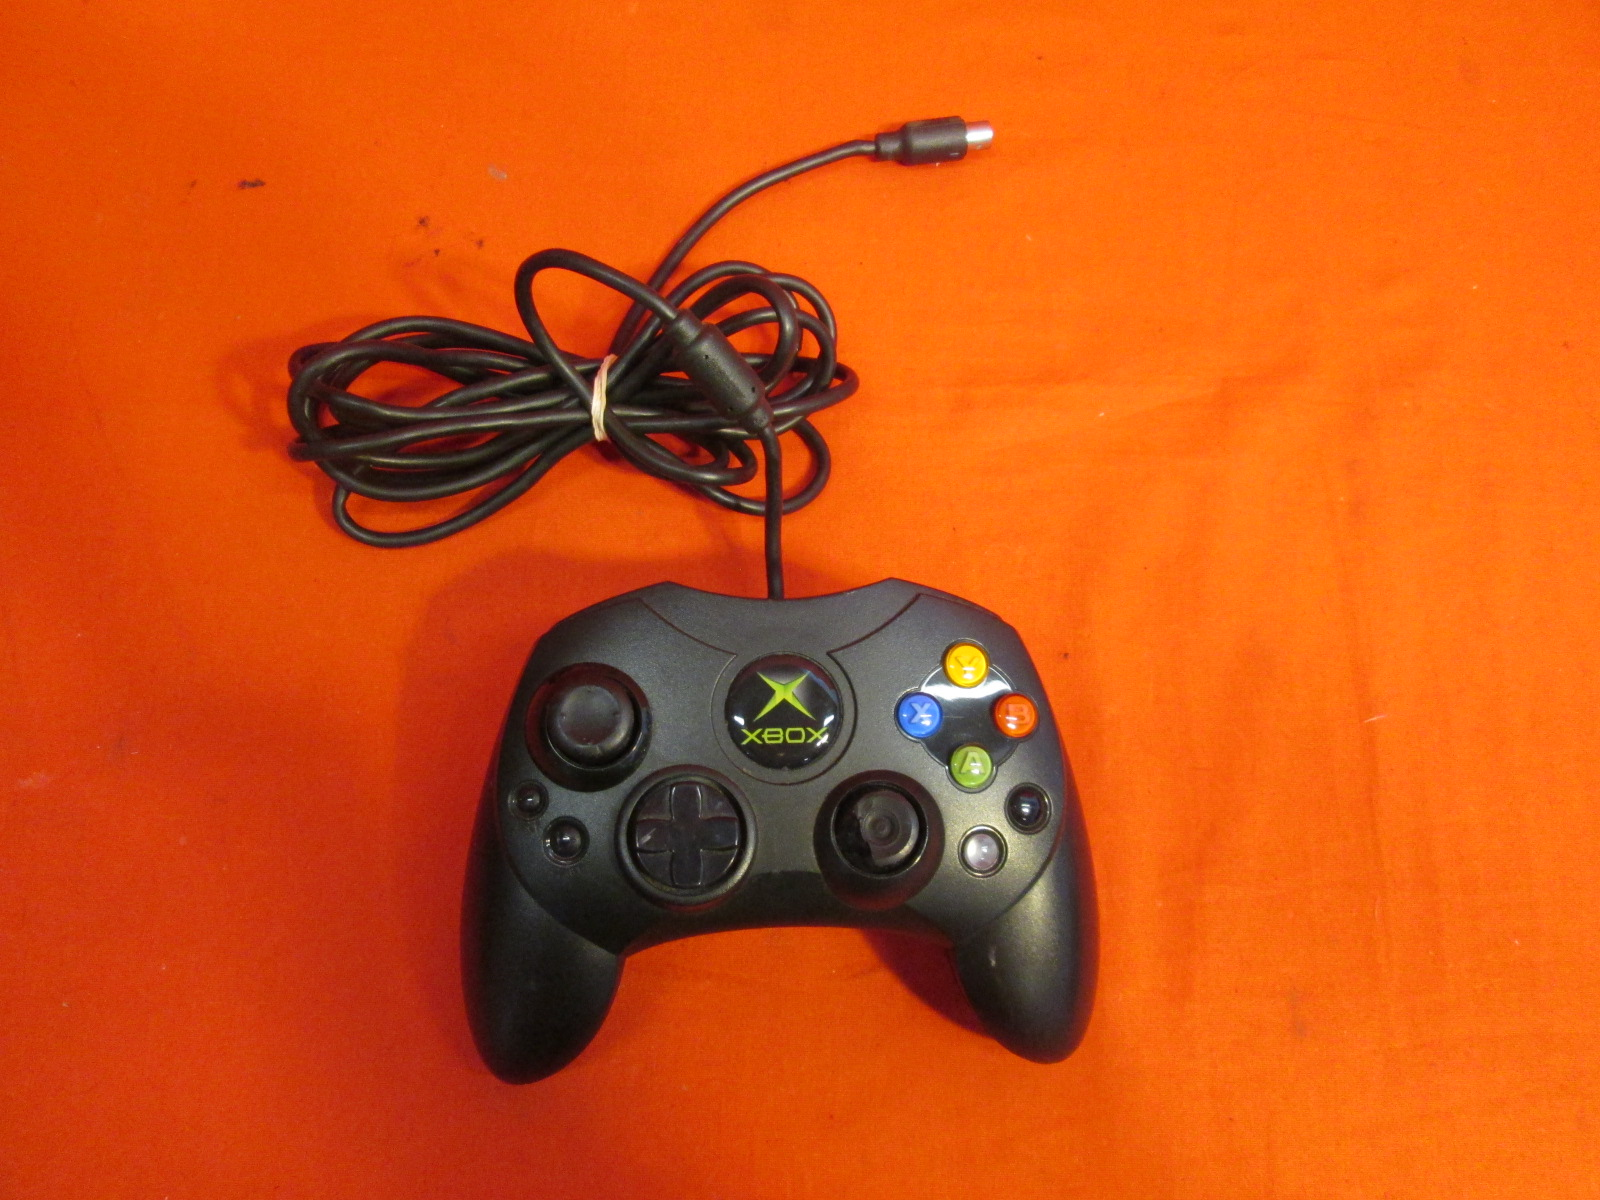 Old Xbox Controller Games : Xbox original wired game pad controller black